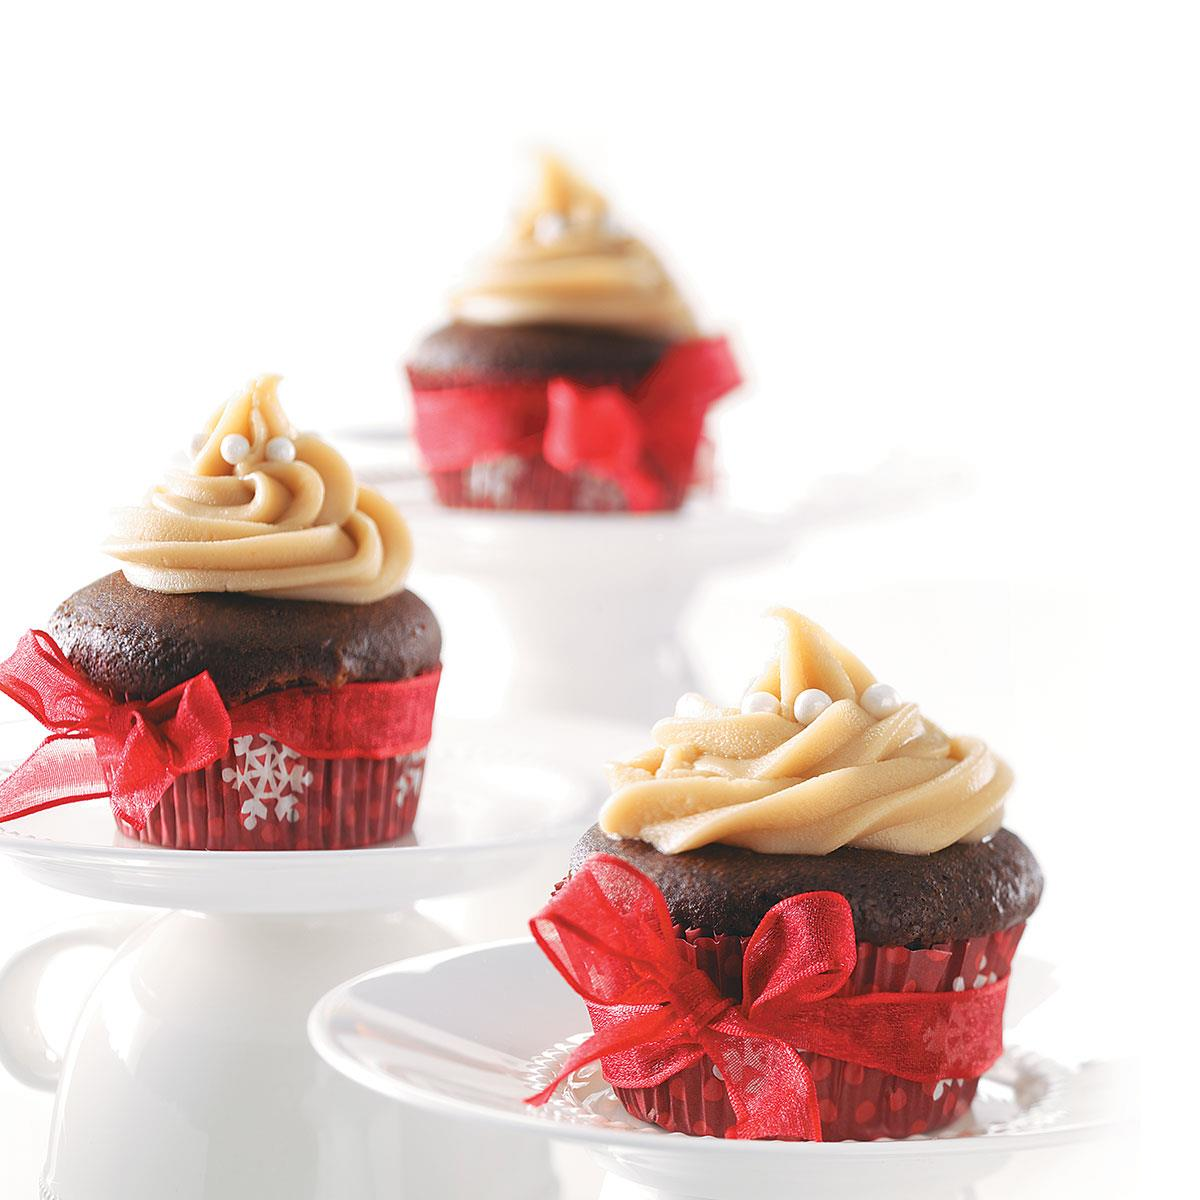 Candy Bar Cupcakes | Taste of Home